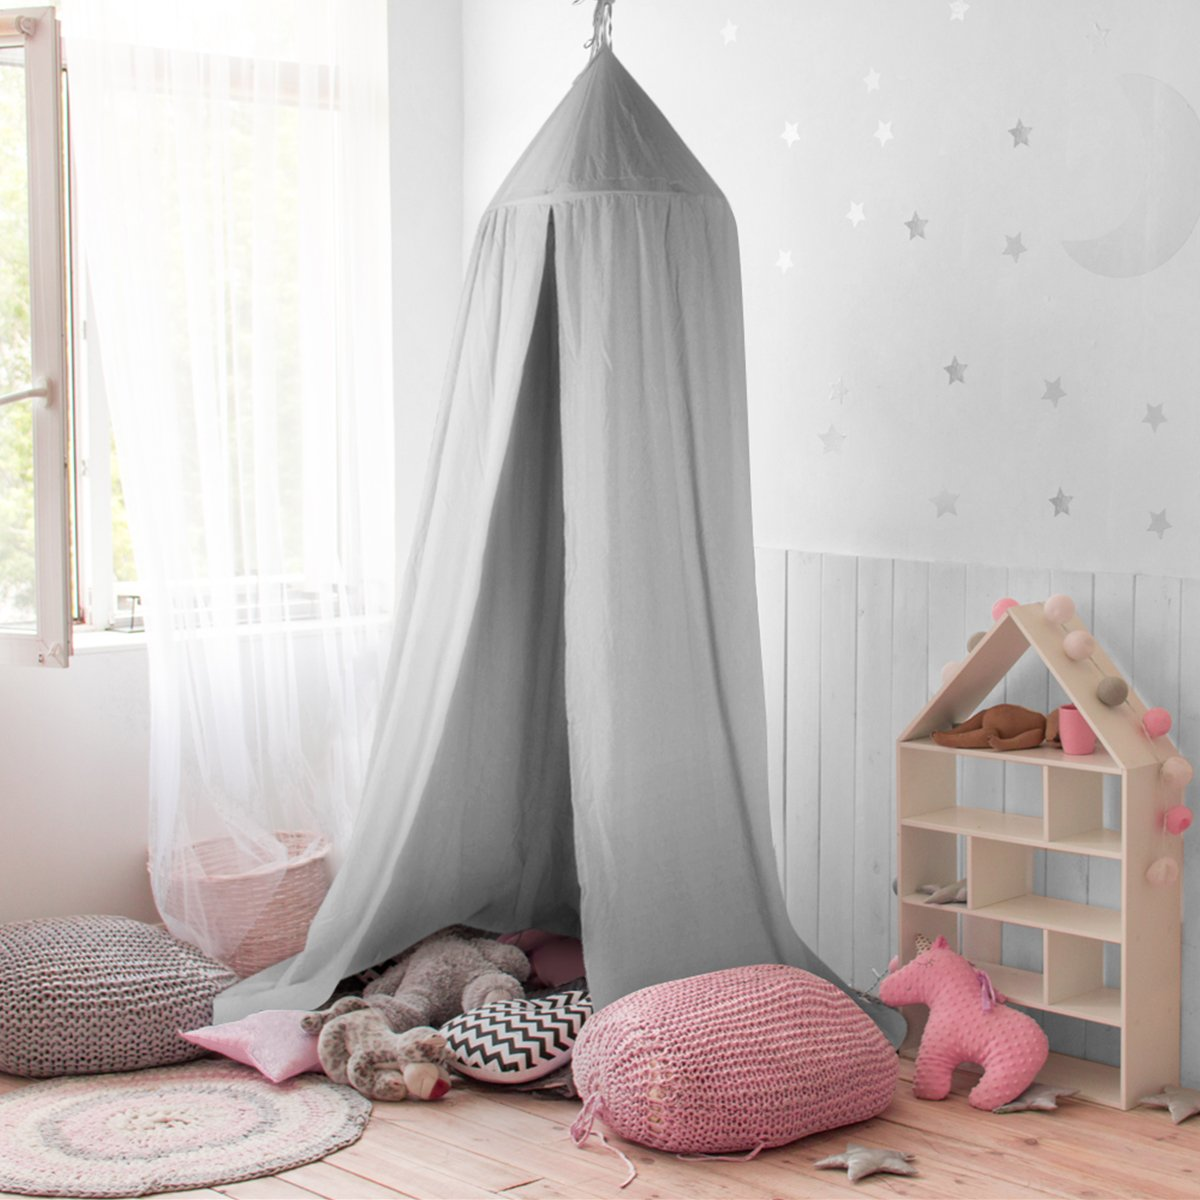 GUSODOR Bed Canopy Kids Dome Cotton Mosquito Net Play Tent Good for Baby Indoor Outdoor Playing & Canopy for Bed: Amazon.co.uk